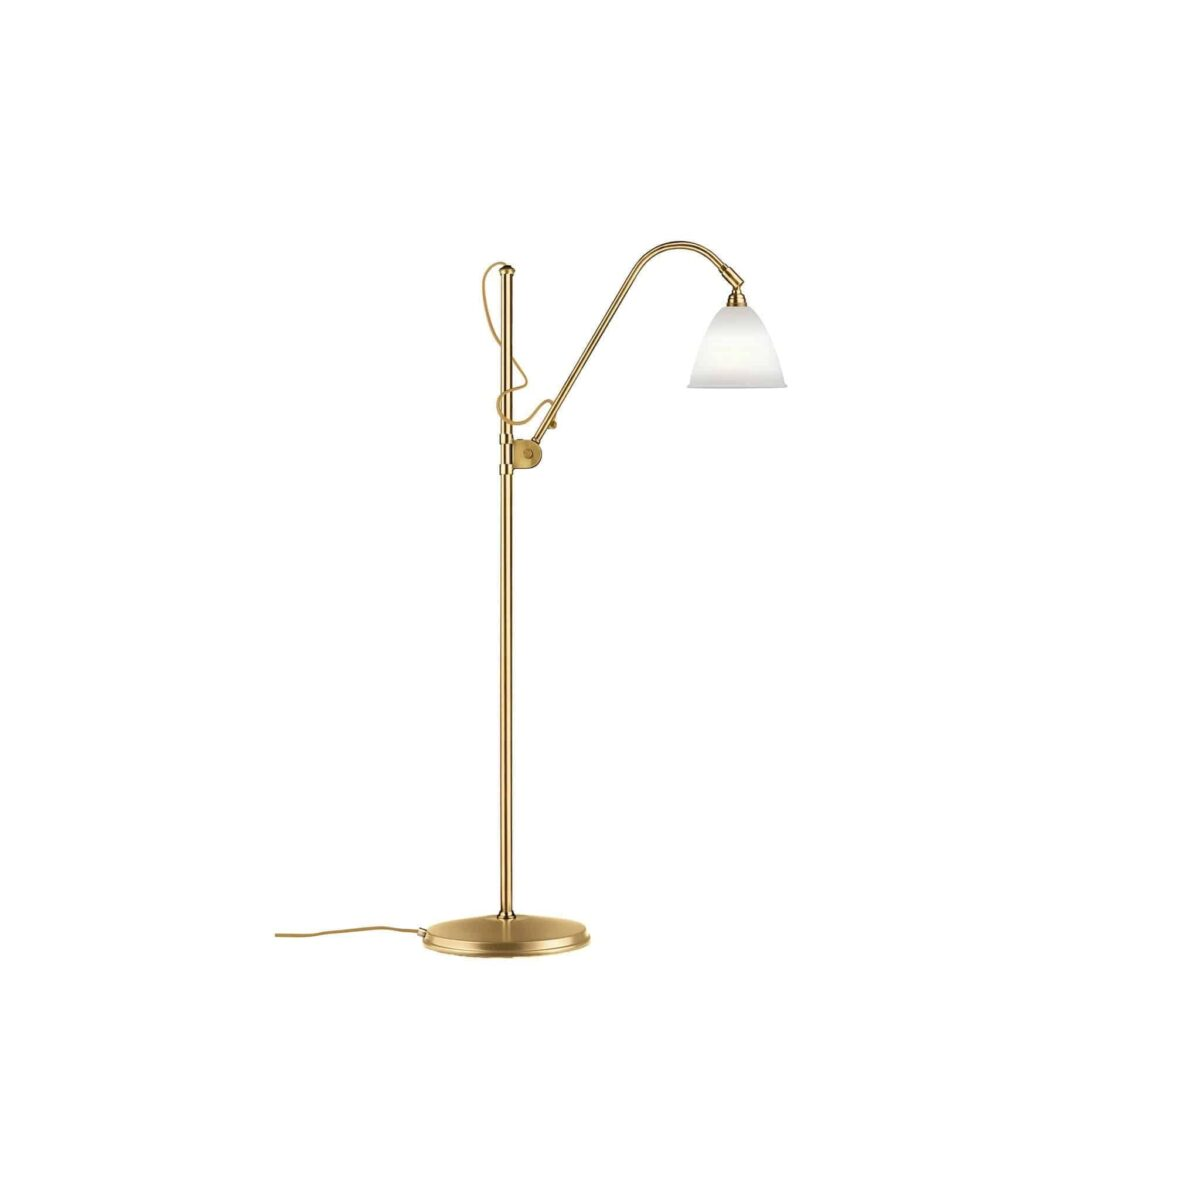 gubi-bestlite-floor-lamp-BL3-S-all-brass-translucent-bone-china-001